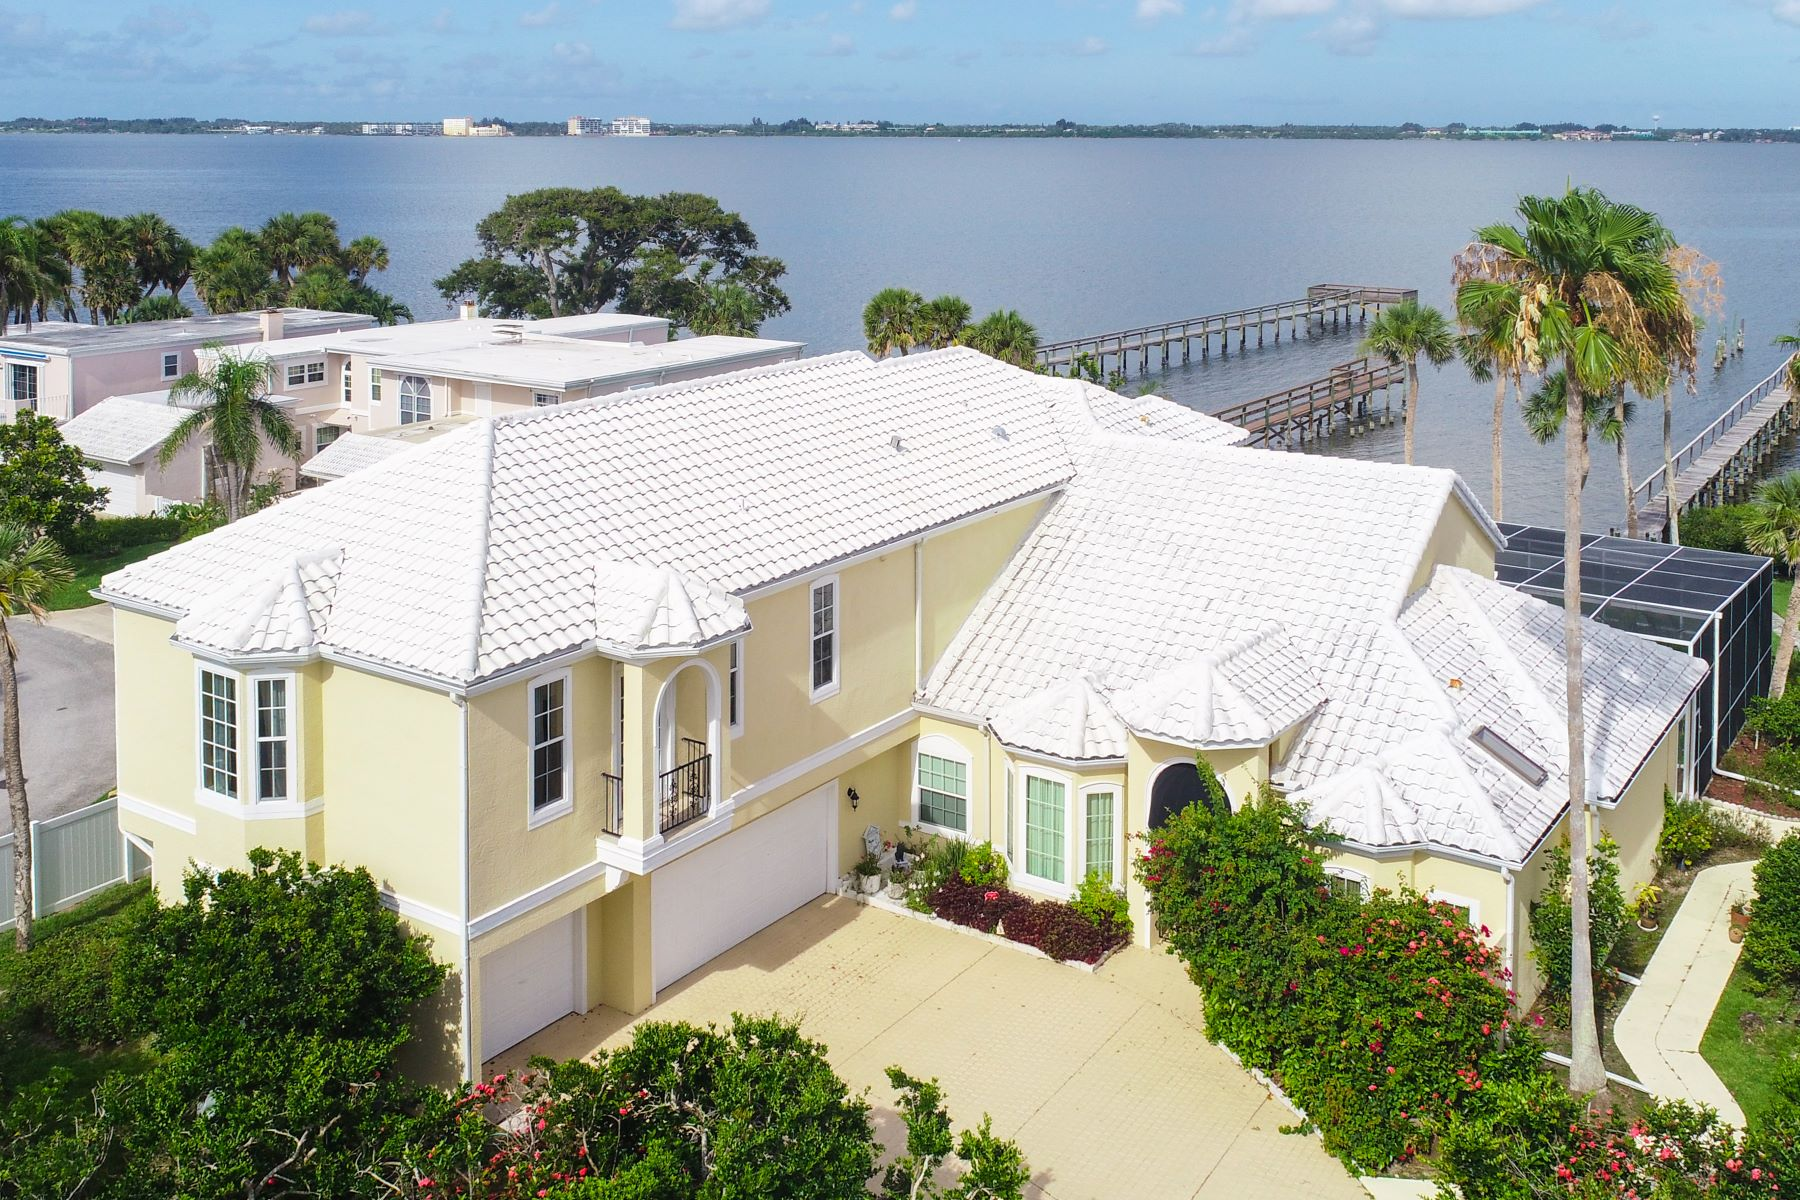 Single Family Homes for Sale at Spacious Direct Riverfront Home 247 Seaview Street NULL Melbourne Beach, Florida 32951 United States